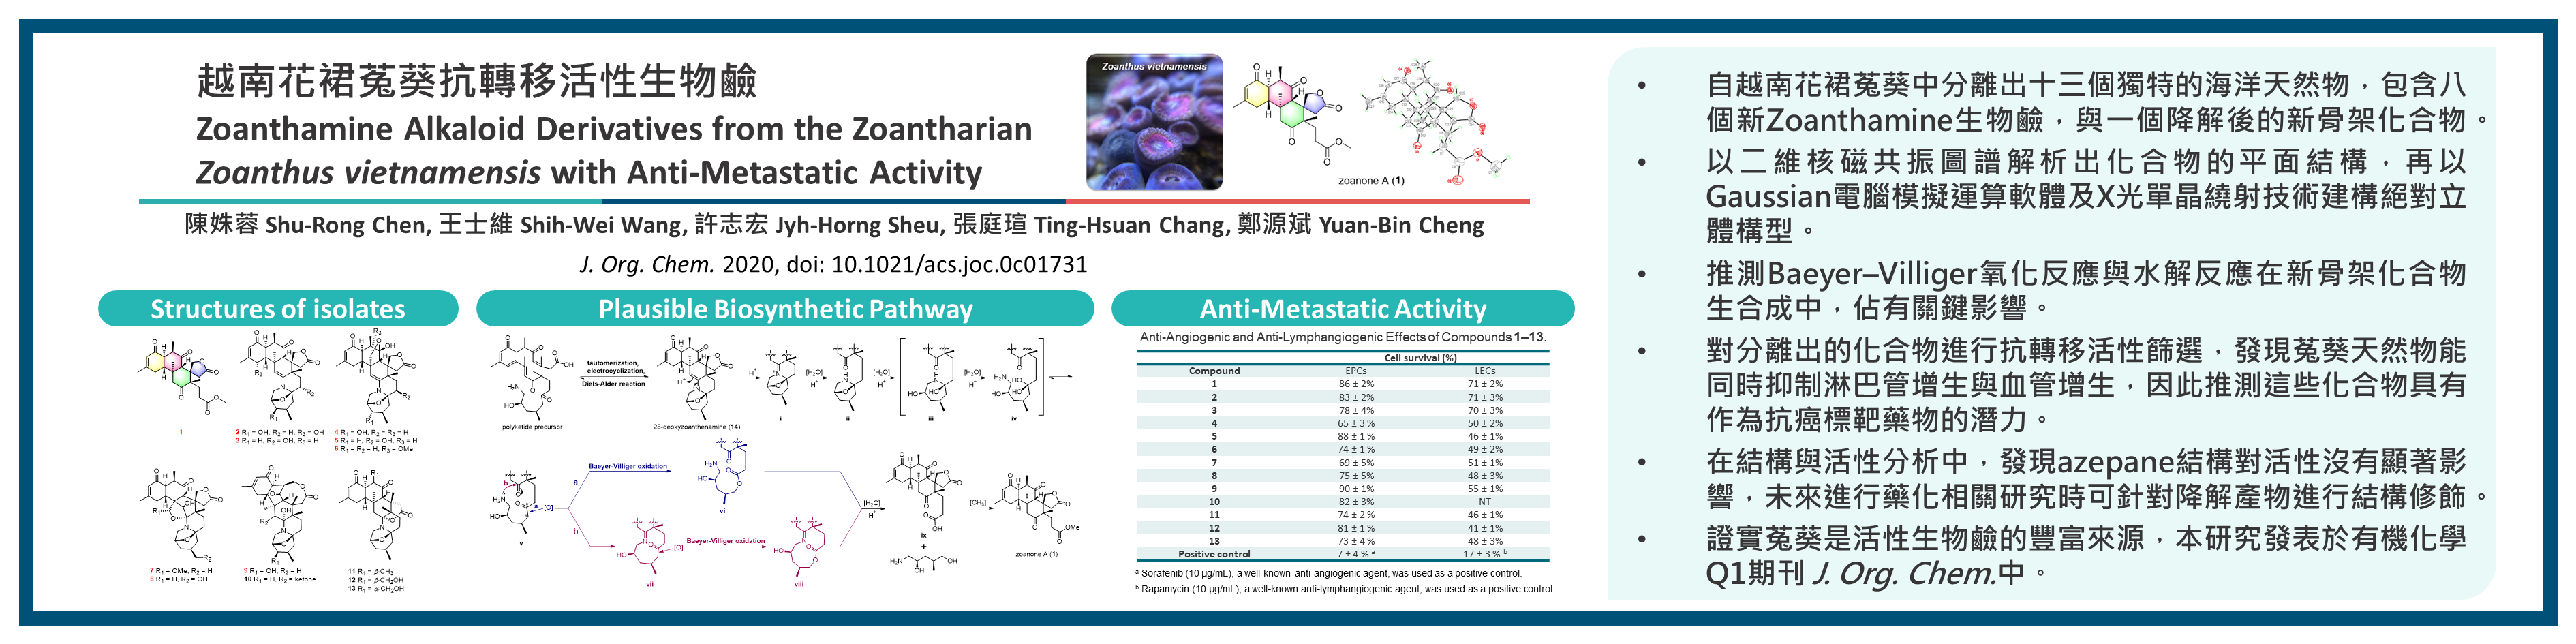 Zoanthamine Alkaloid Derivatives from the Zoantharian Zoanthus vietnamensis with Antimetastatic Activity